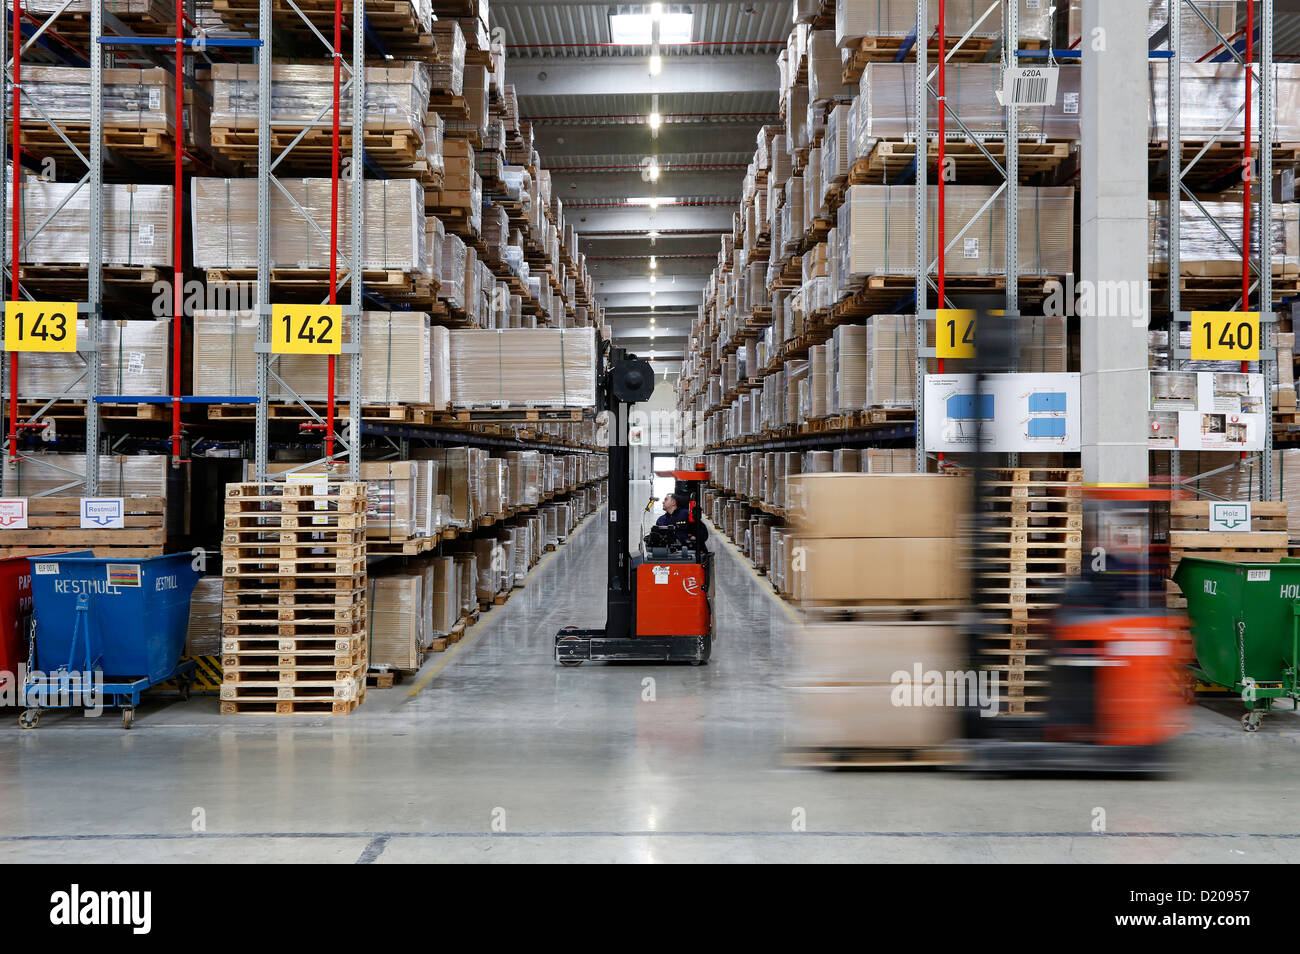 dortmund germany ikea distribution center dortmund ellinghausen stock photo 52867619 alamy. Black Bedroom Furniture Sets. Home Design Ideas